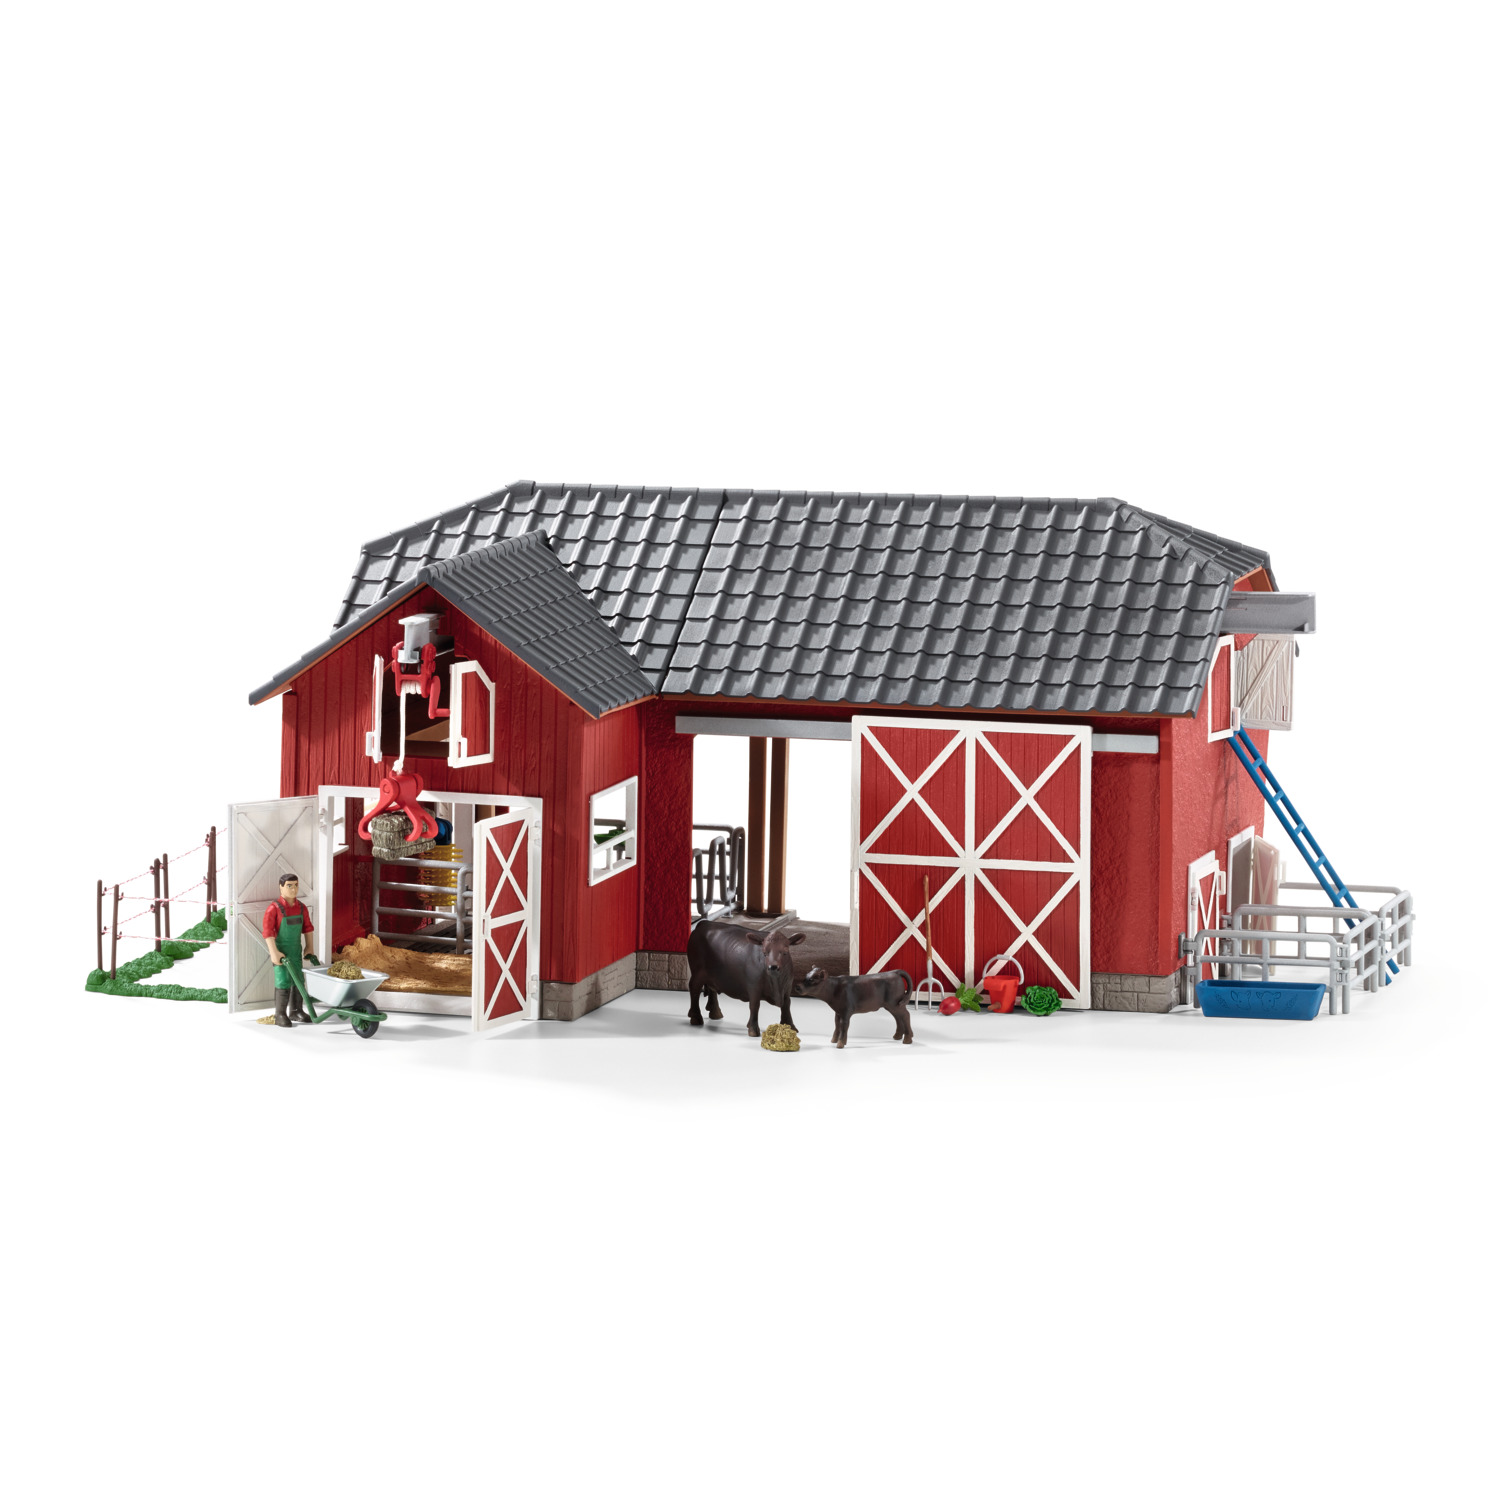 Schleich Farm World, Large Red Barn and with Animals and Accessories Toy Figure by Schleich USA Inc